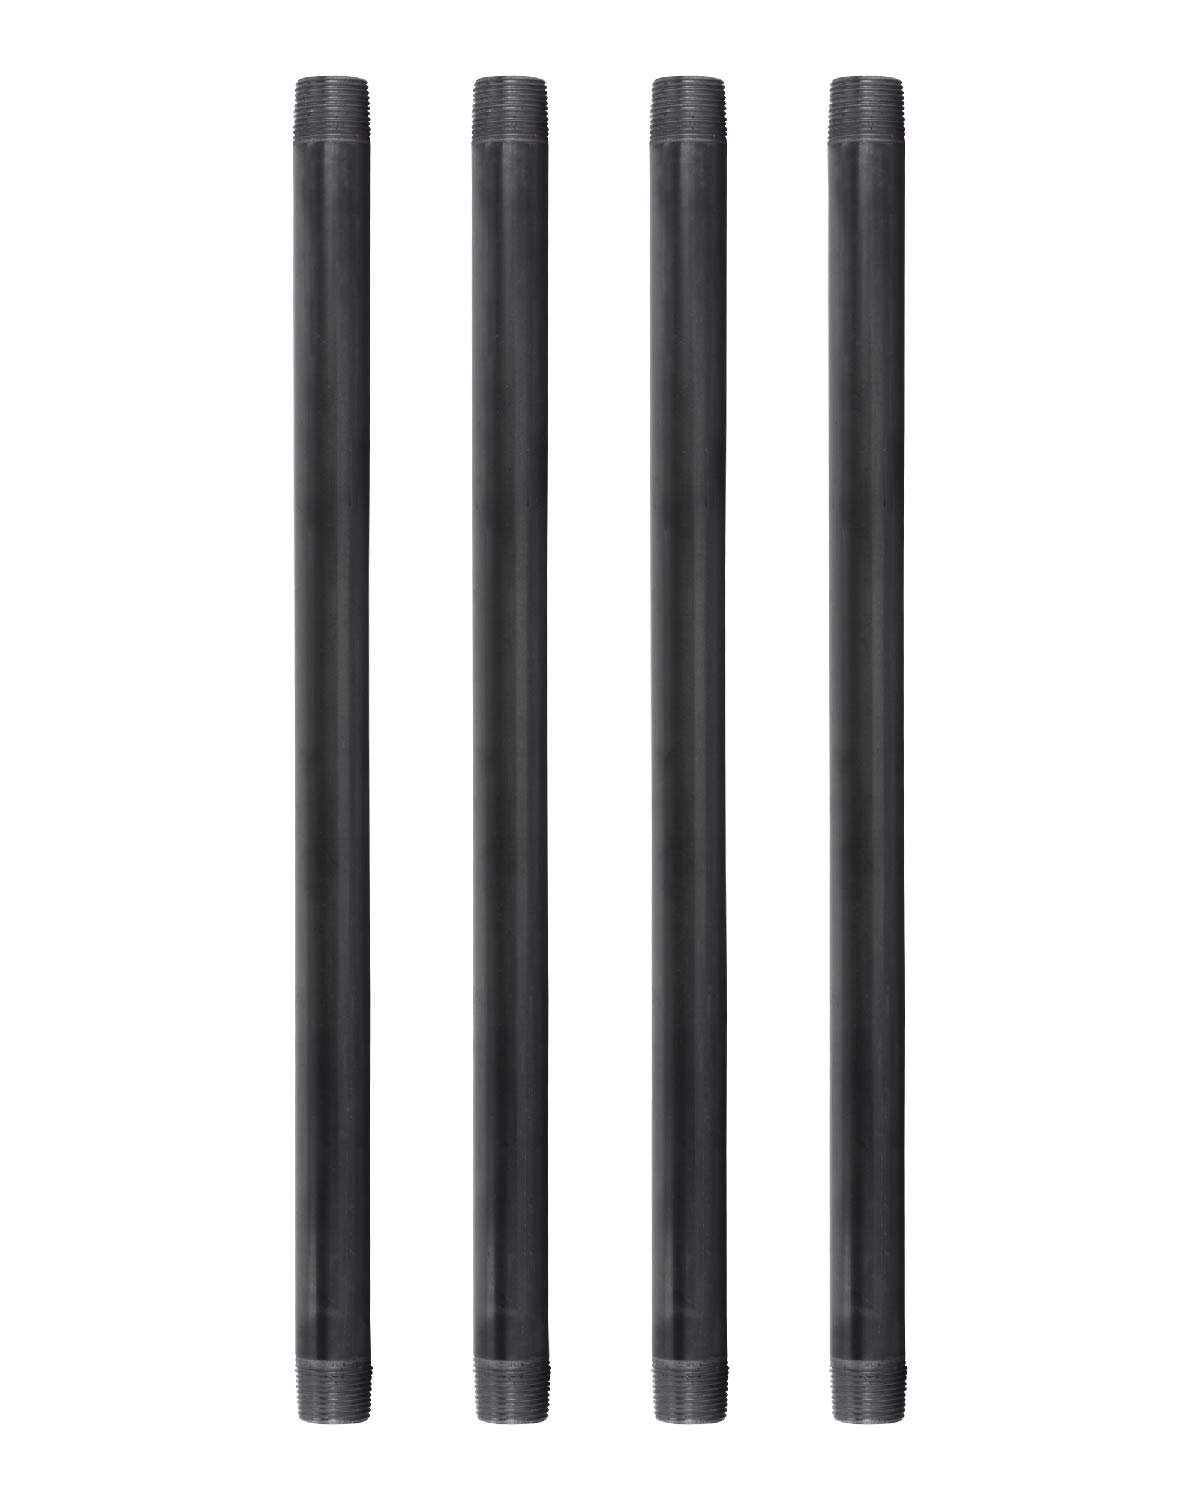 "Pipe Decor 3/4"" x 18"" Malleable Cast Iron Pipe, Pre Cut, Industrial Steel Grey Fits Standard Three Quarter Inch Black Threaded Pipes Nipples and Fittings, Build Vintage DIY Furniture, 4 Pack"